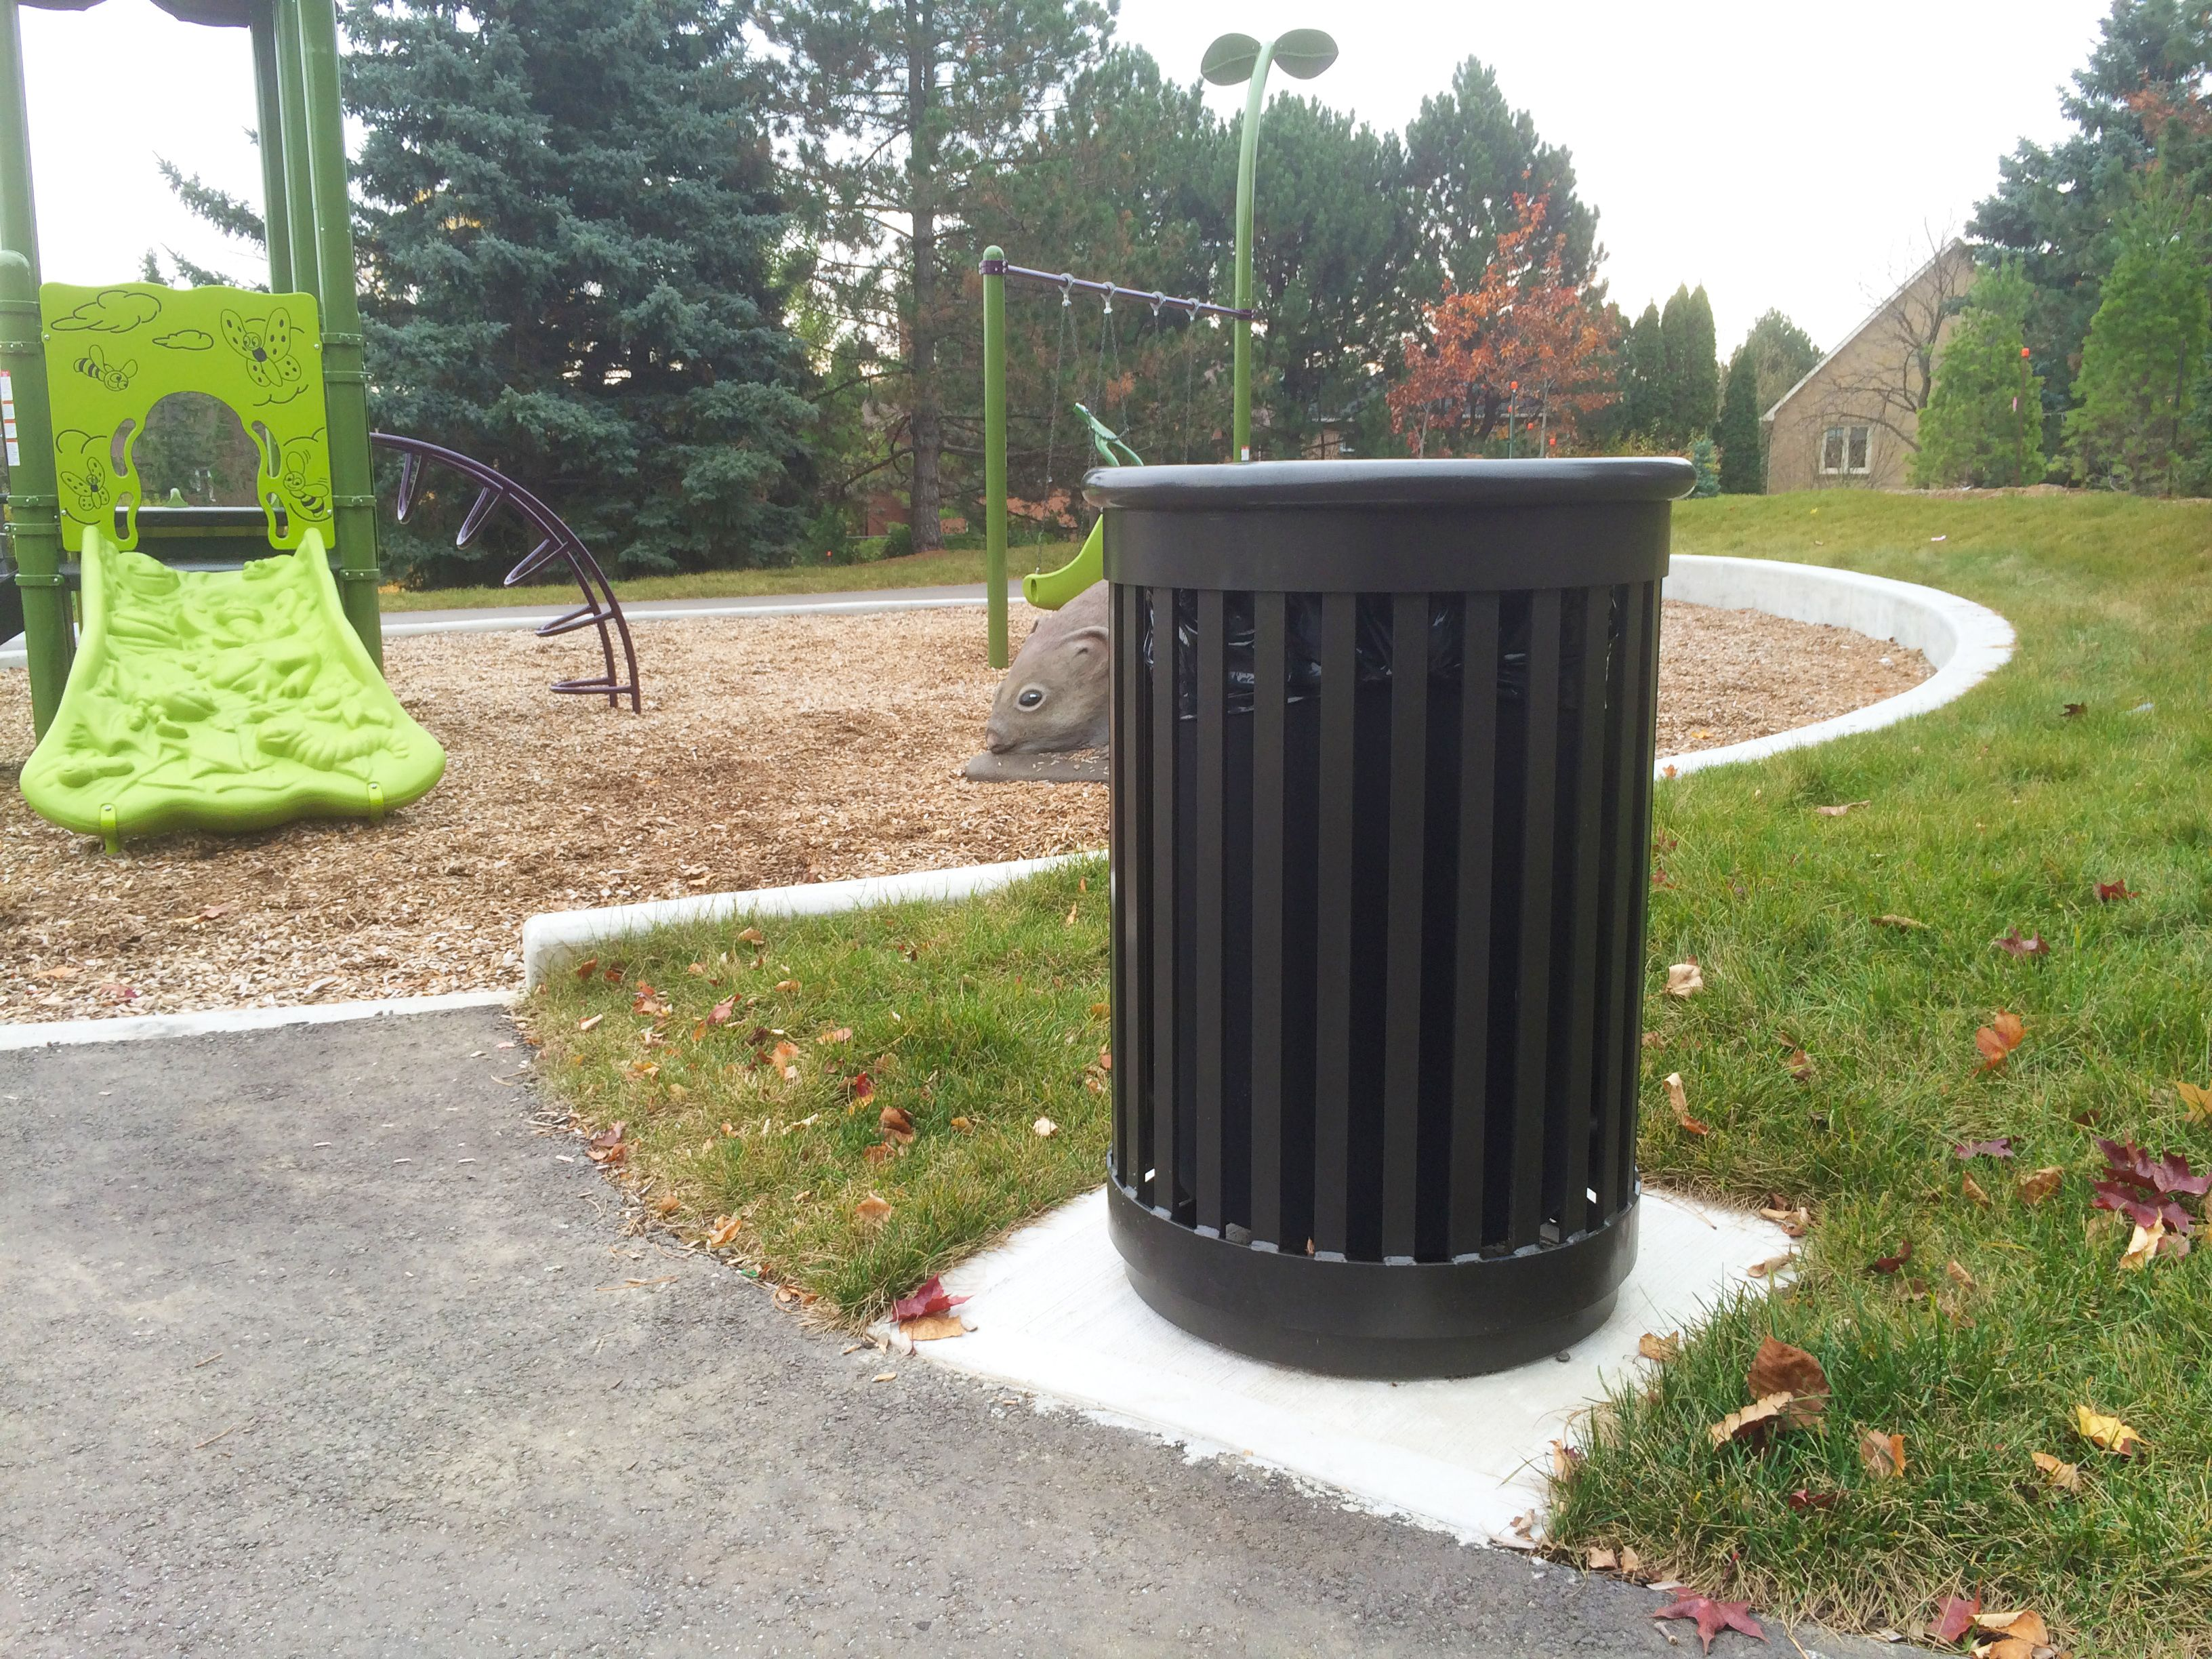 Maglin S Mlwr250 32 Trash Container Fits In Perfectly At The Gapper Park In Richmond Hill Ontario Our Kids Would L Trash Containers Trash Recycling Containers